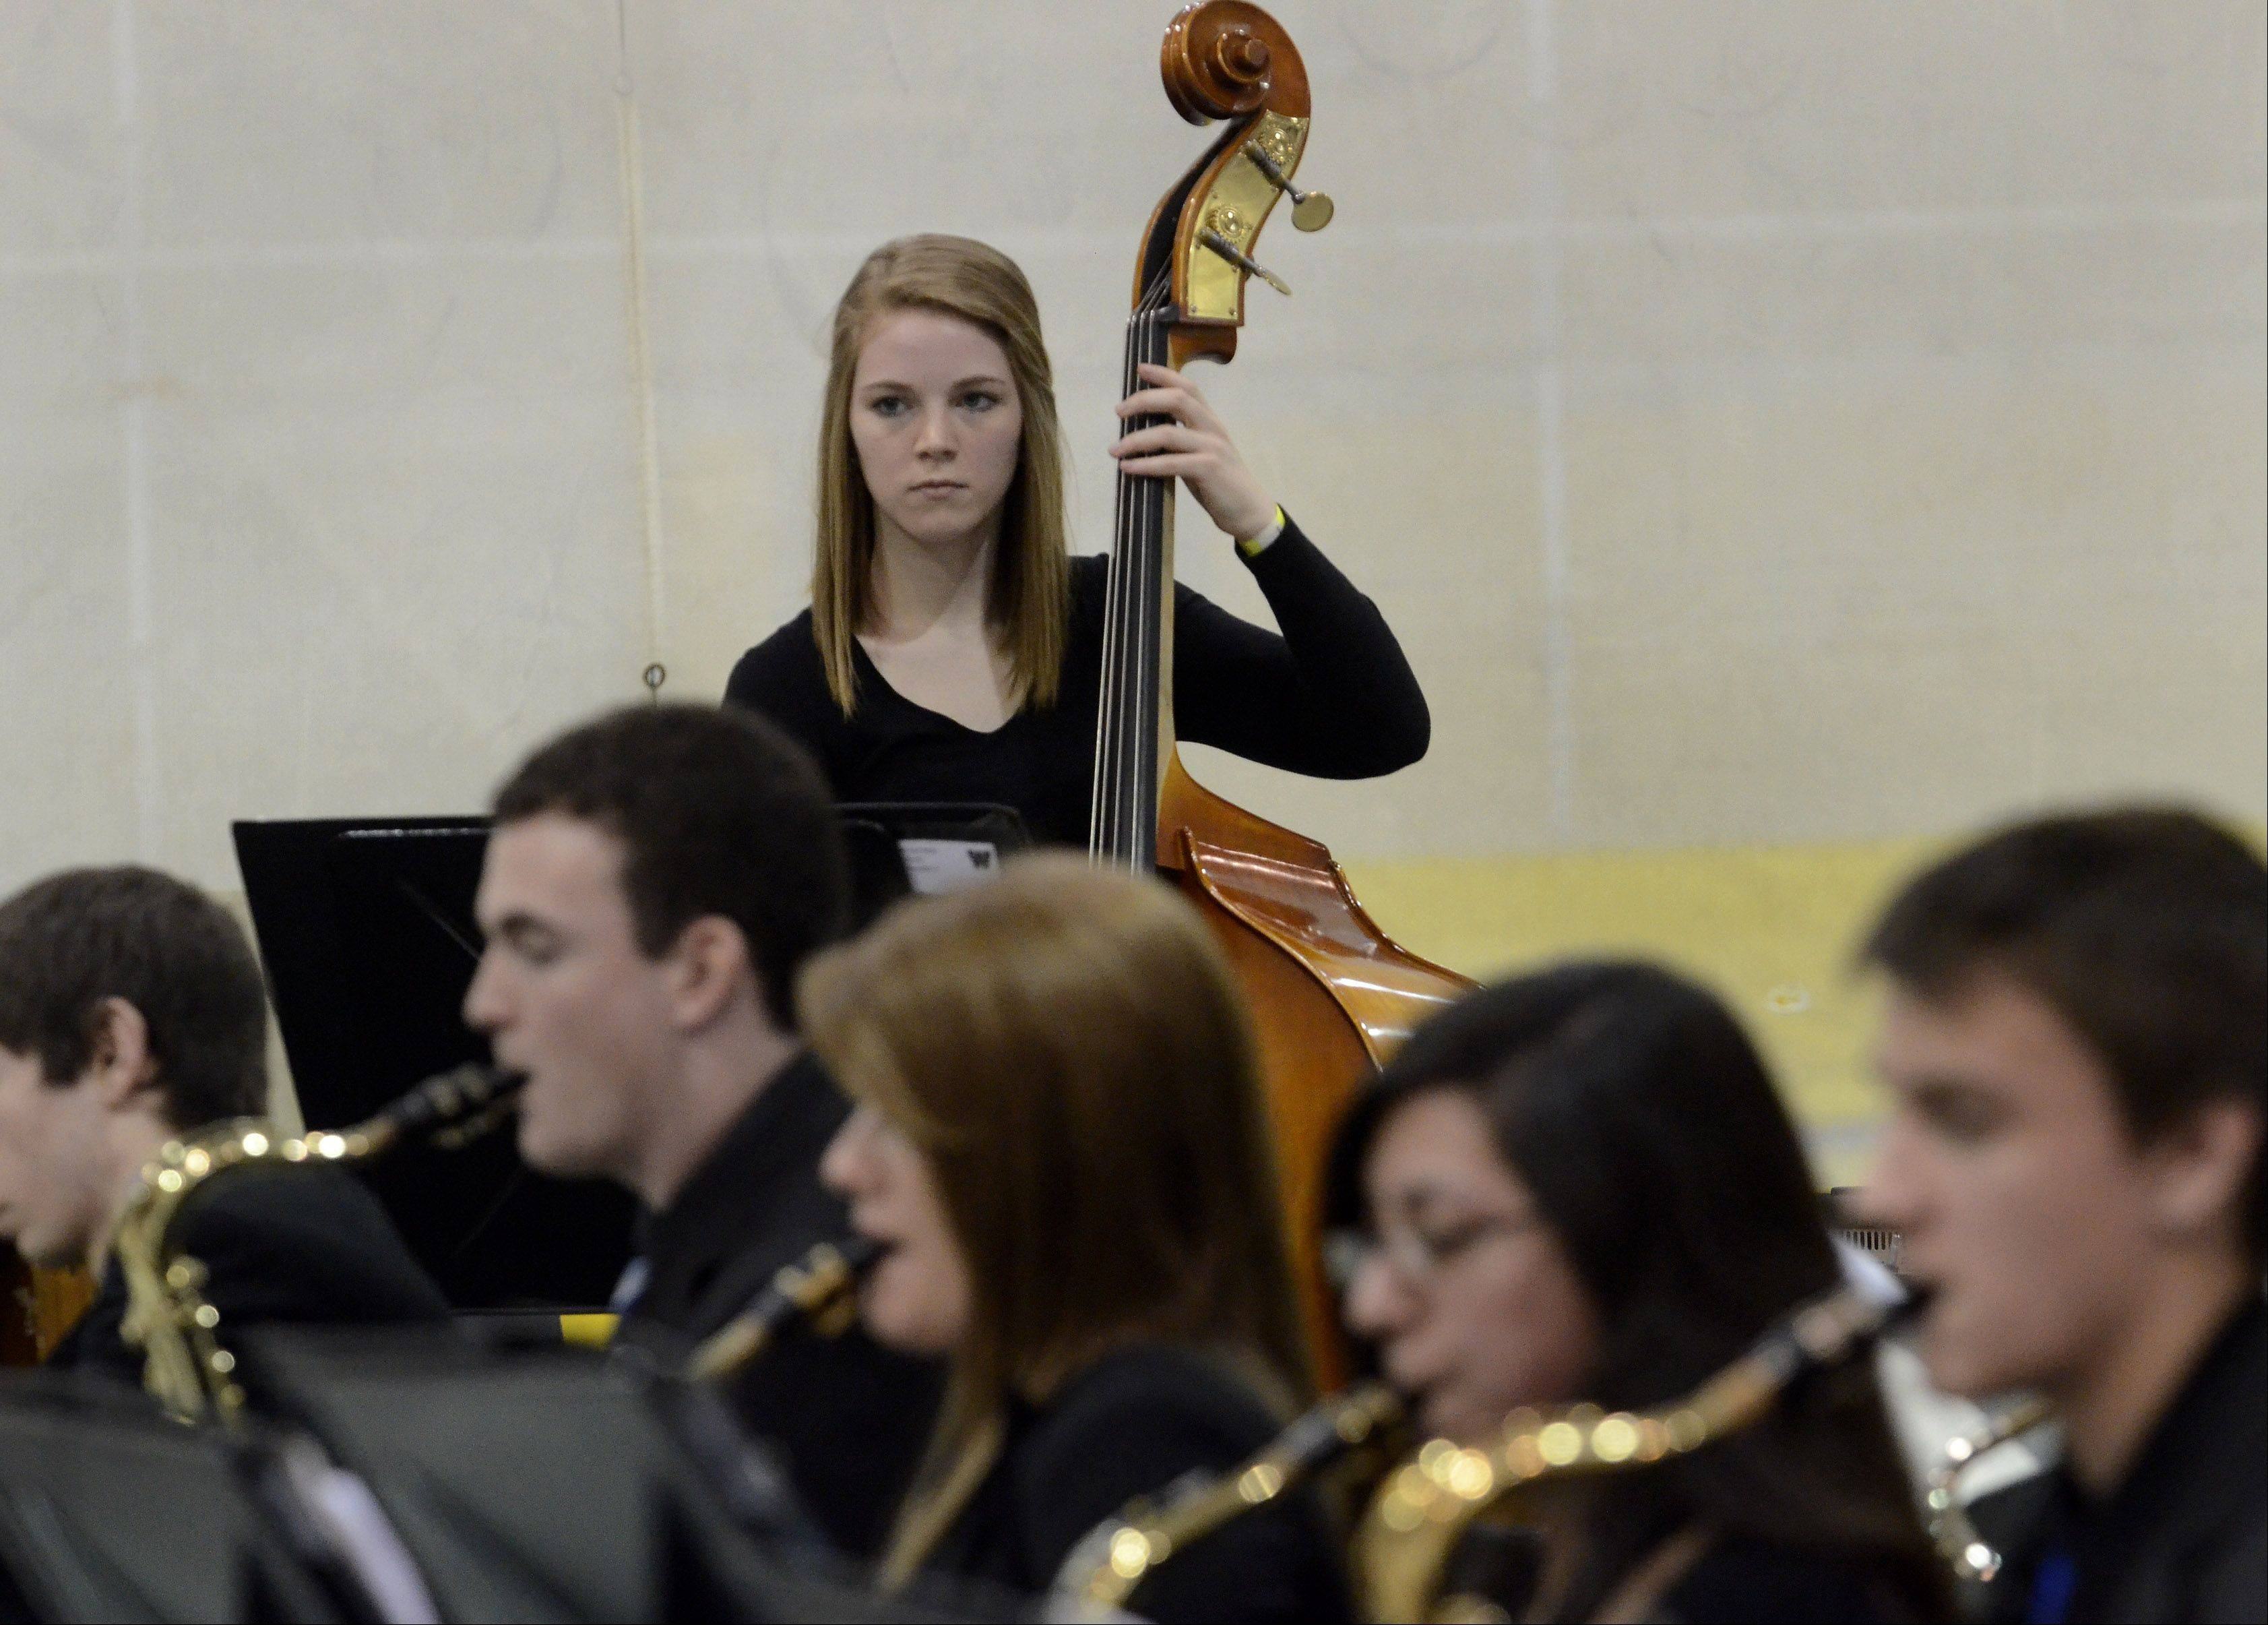 Rene Zerfas on bass for the West Aurora High School Jazz Ensemble.